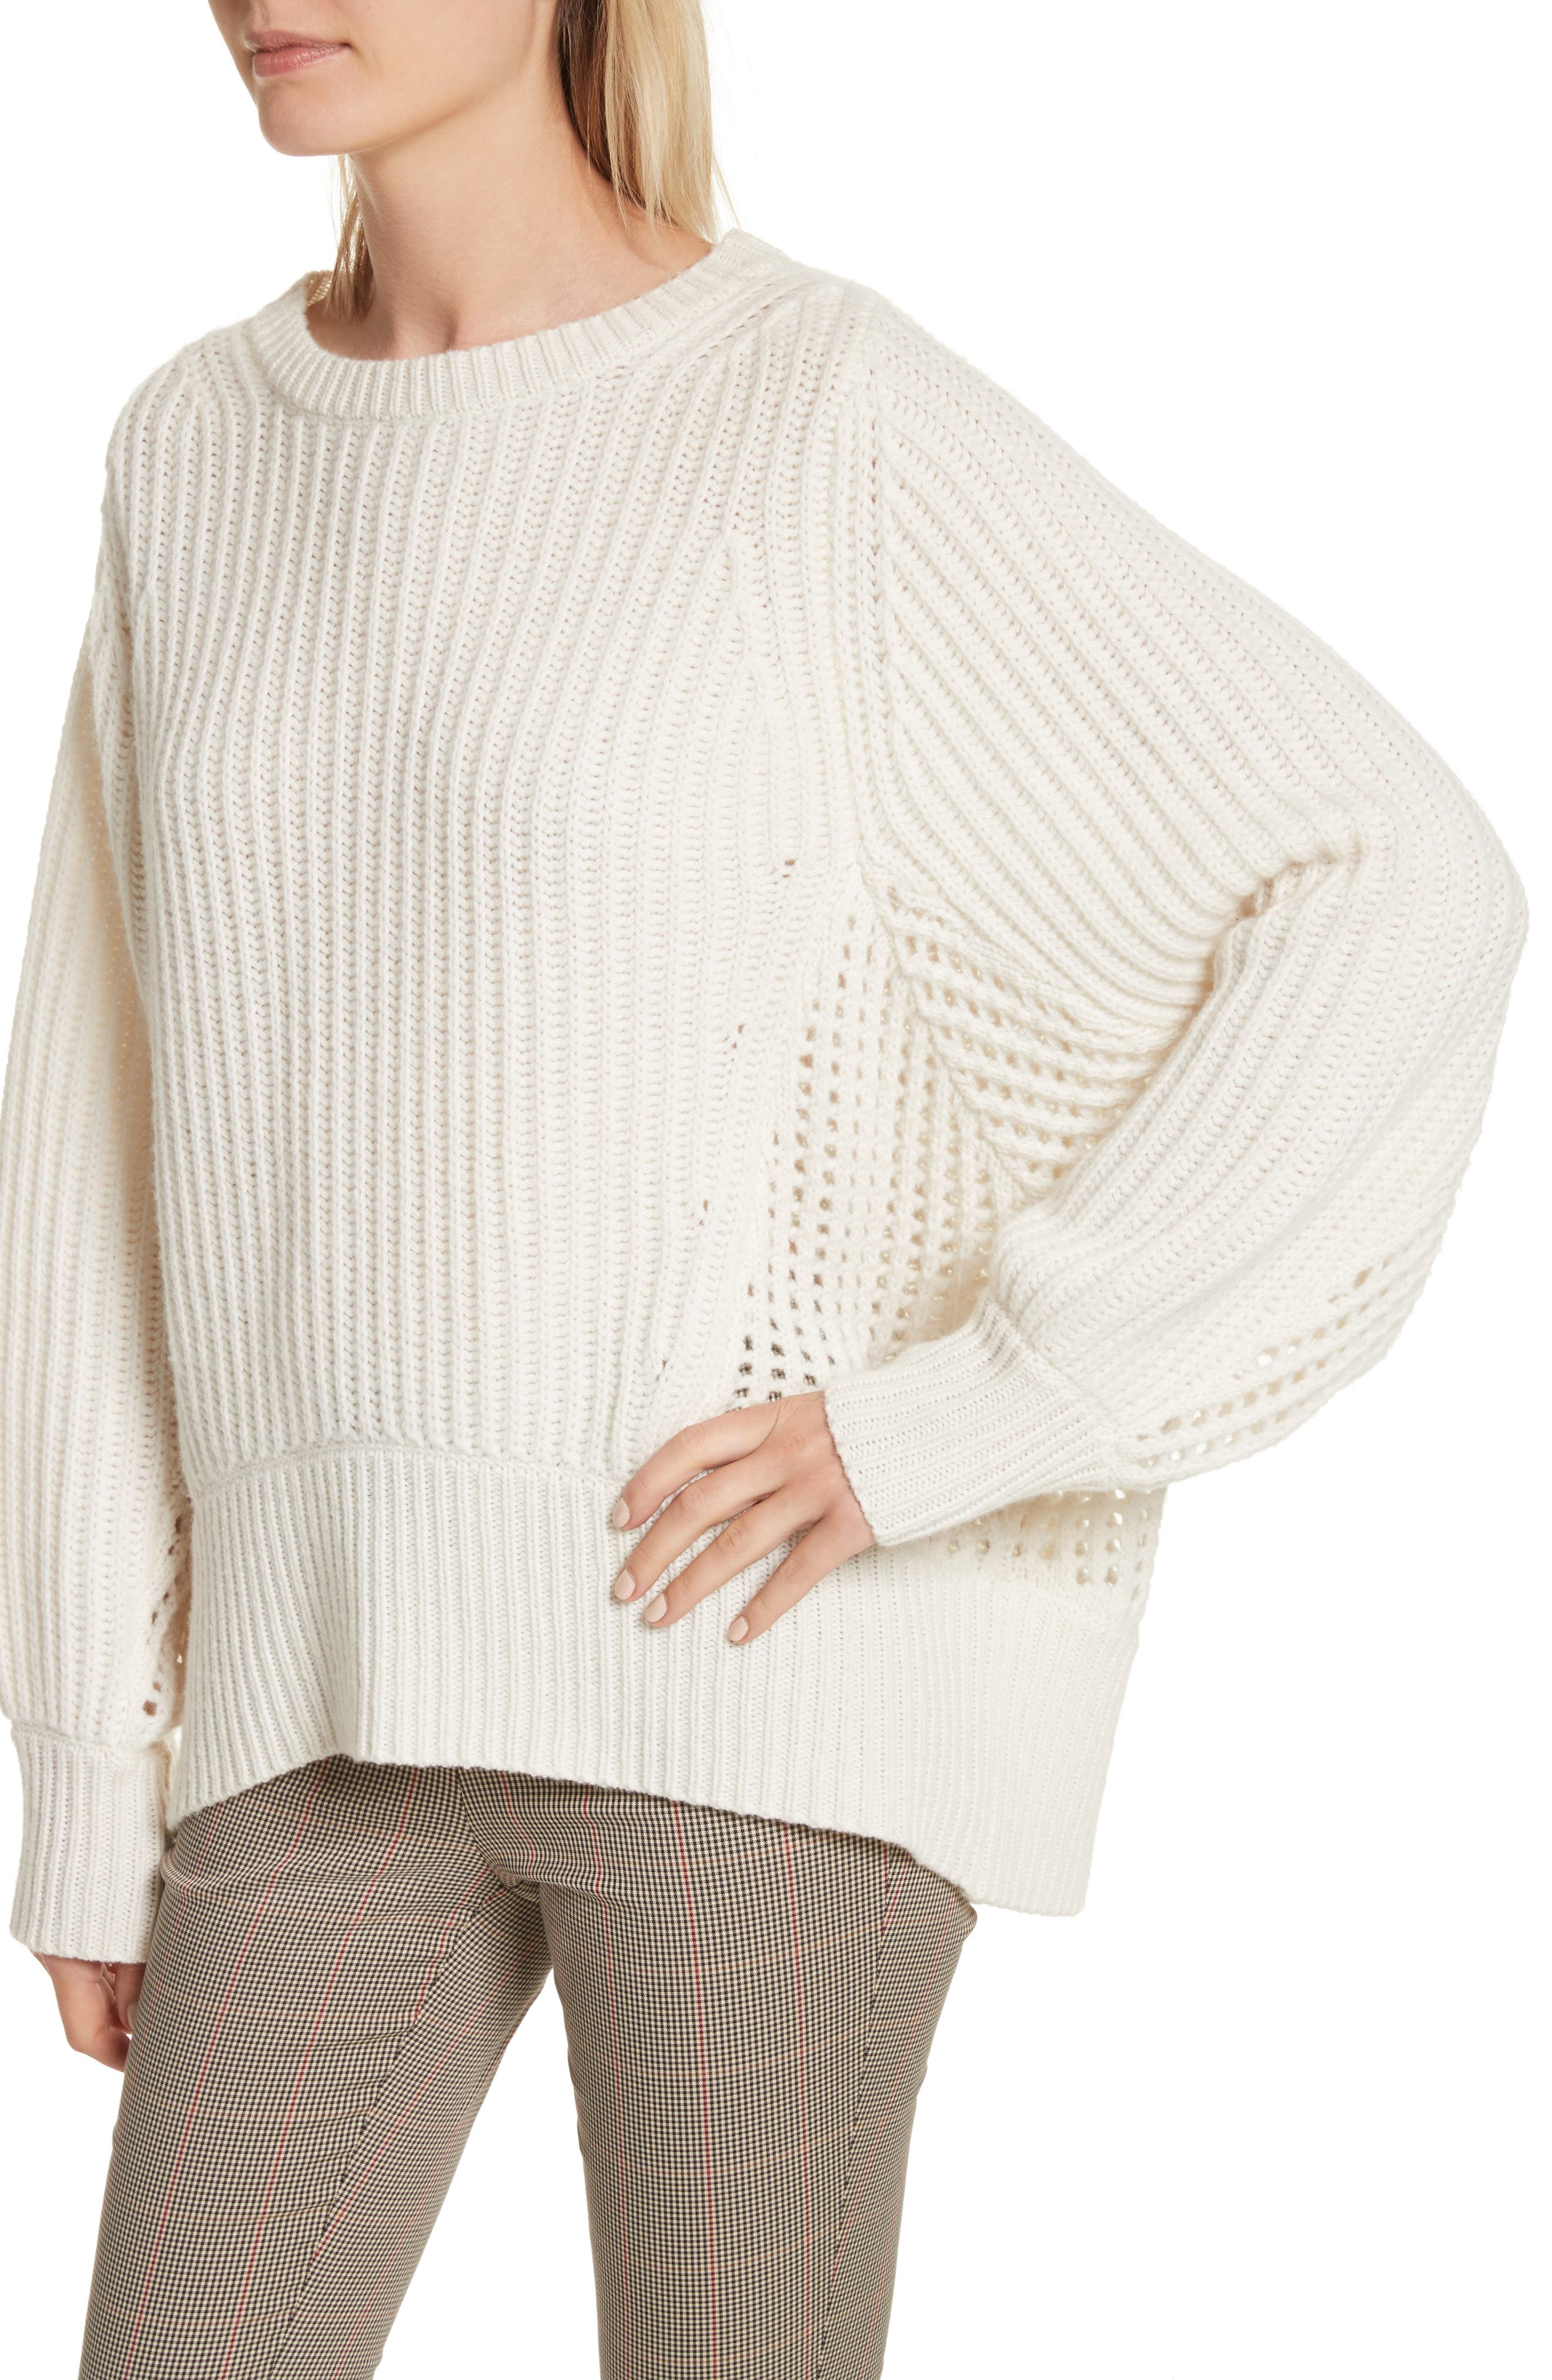 Athena Cashmere Pullover,                             Alternate thumbnail 8, color,